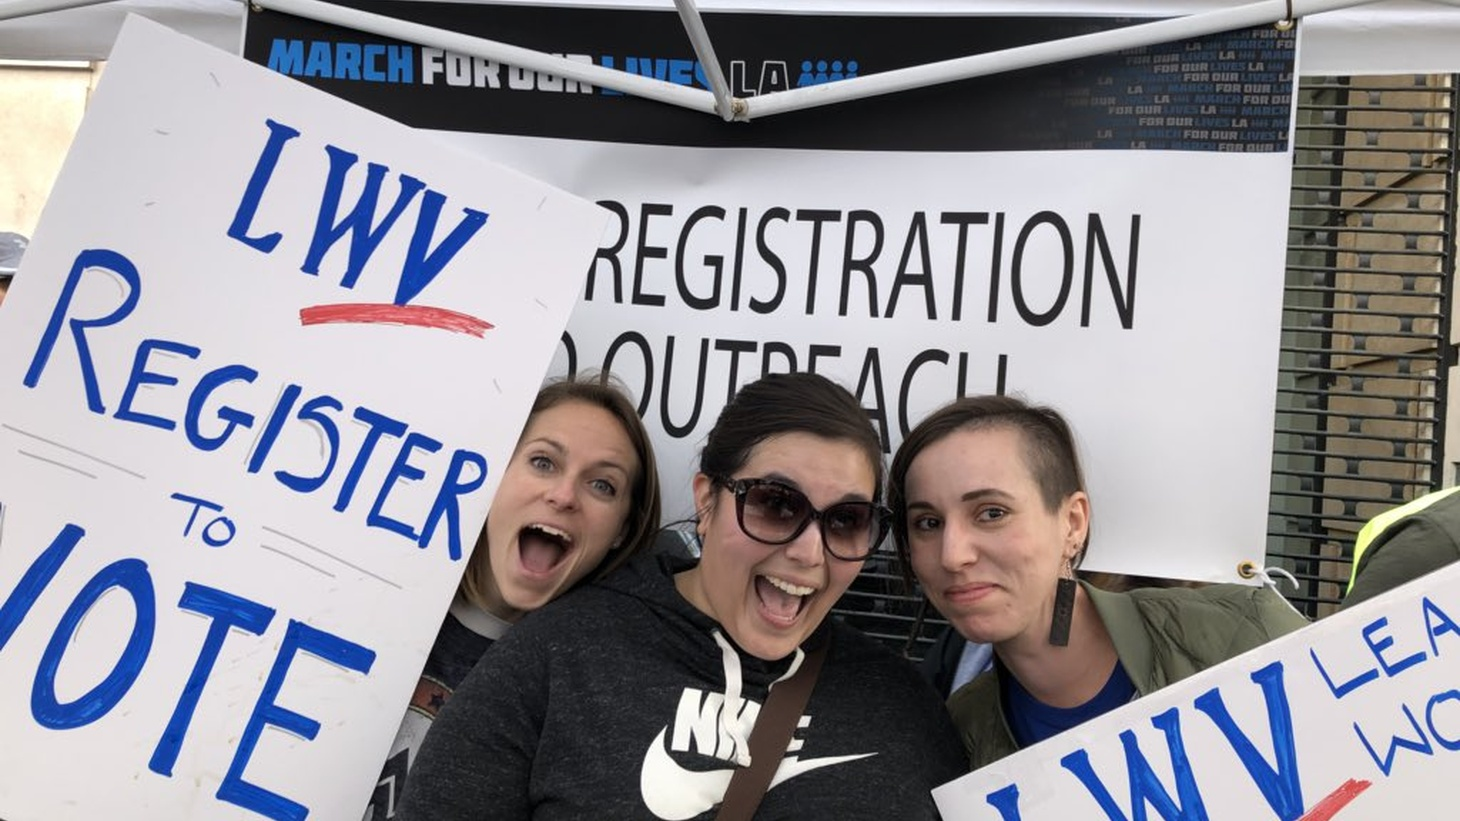 Lex Roman (right) at a registration outreach table.